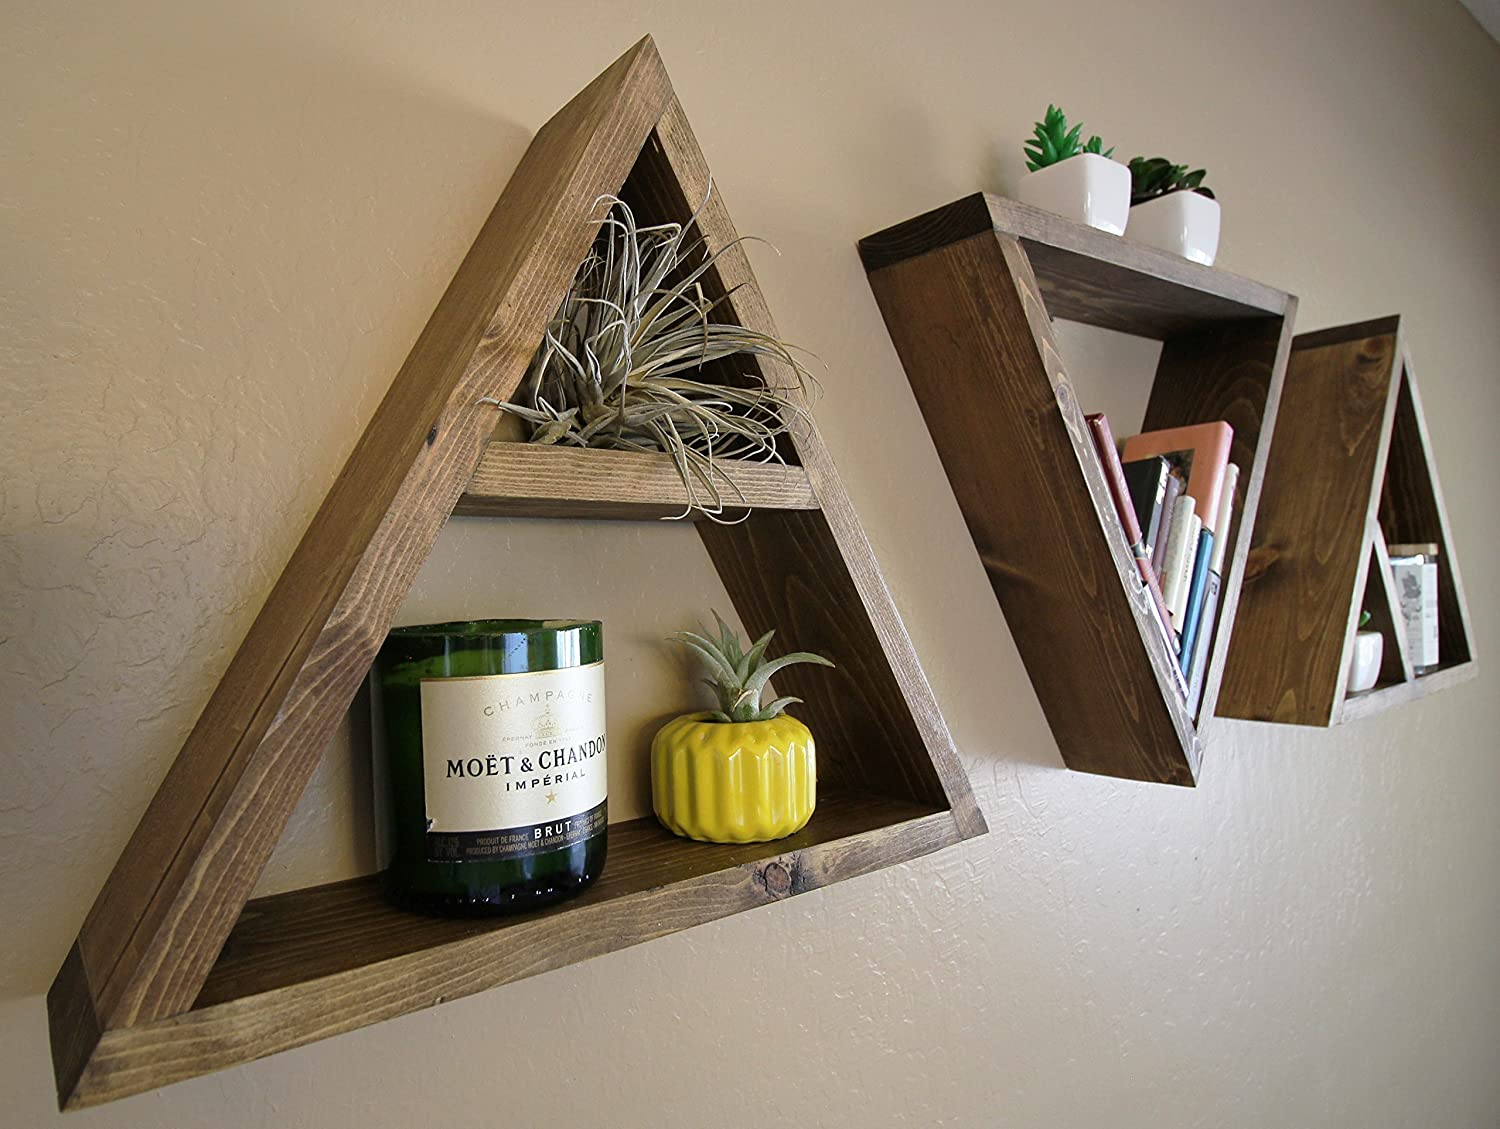 Amazon wood triangle shelf custom color crystal display amazon wood triangle shelf custom color crystal display shelf geometric wall shelves dorm decor mid century modern single or set of three amipublicfo Gallery